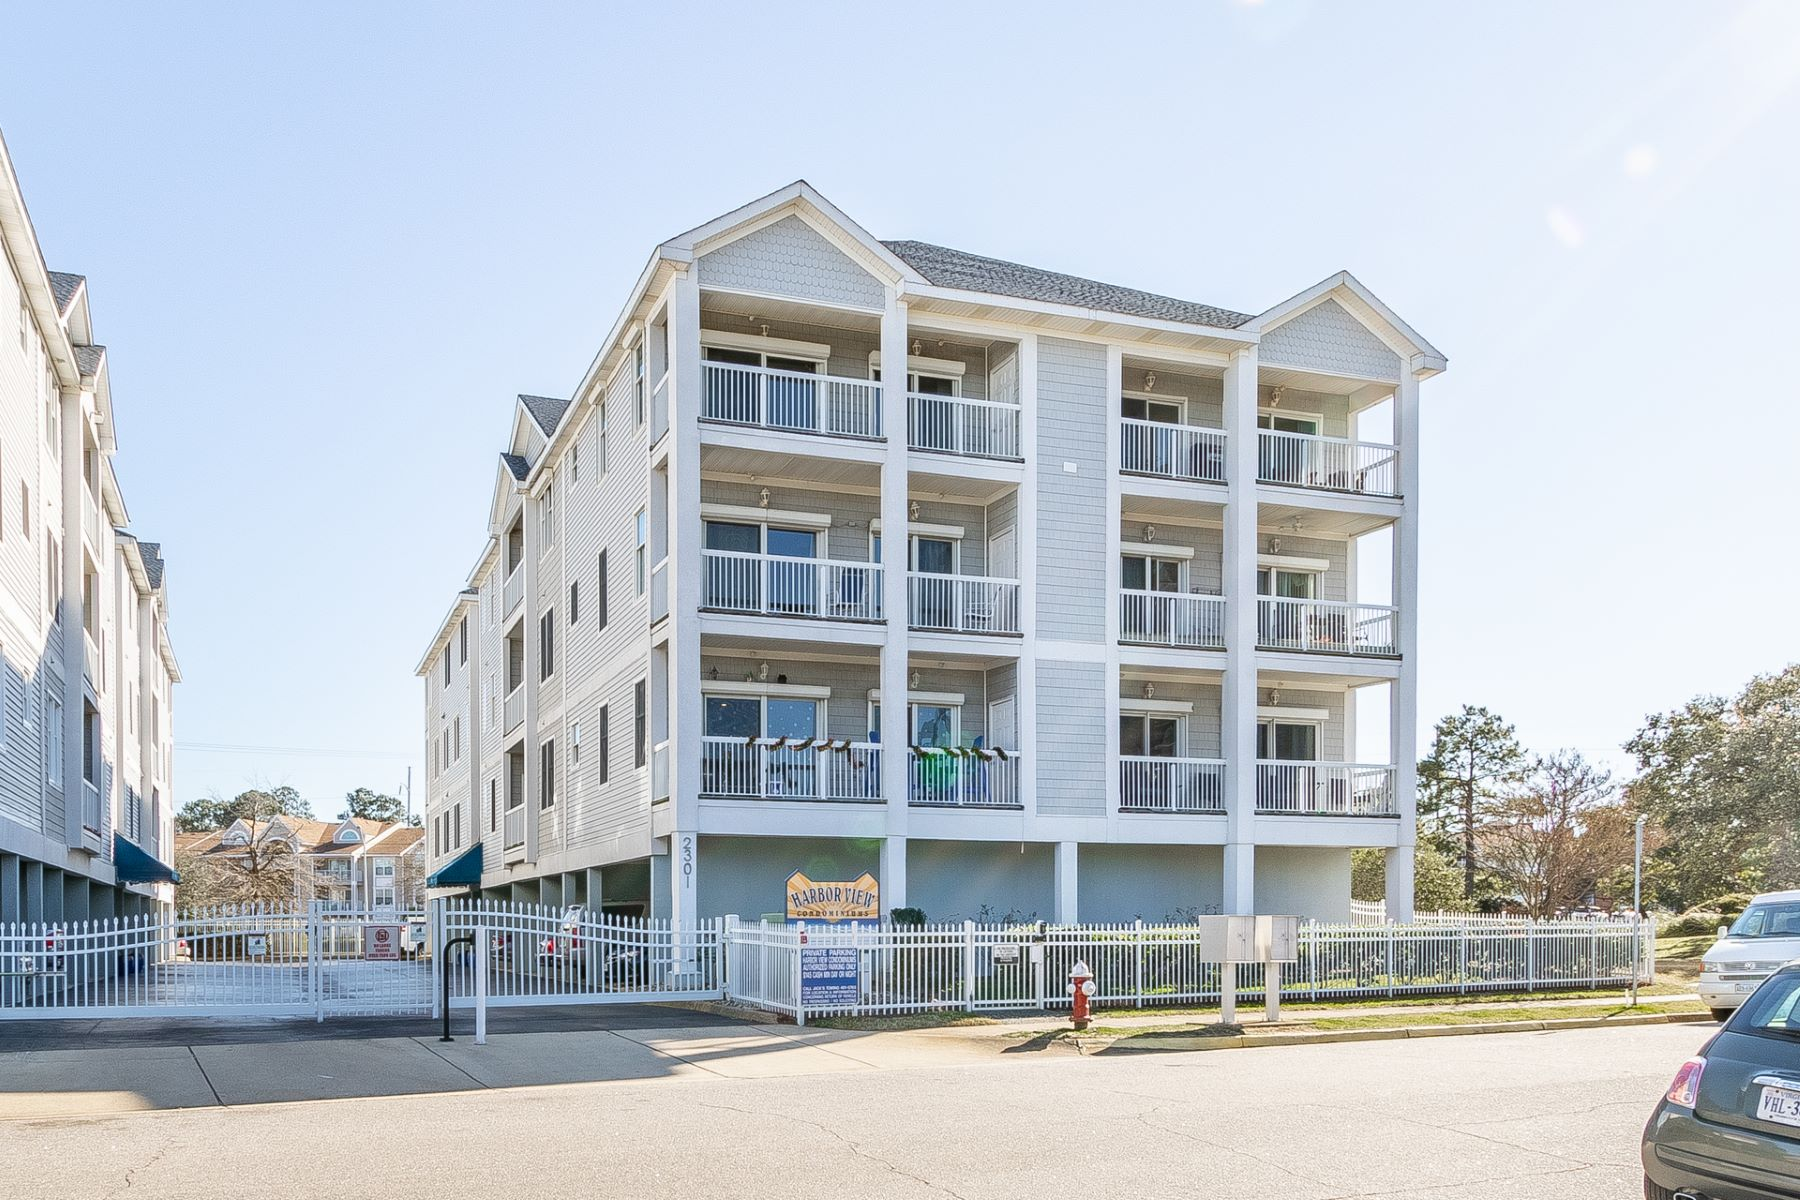 Condominium for Sale at 2301 Page Harbor, Unit# 306 2301 Page Harbor, Unit# 306 Virginia Beach, Virginia 23451 United States